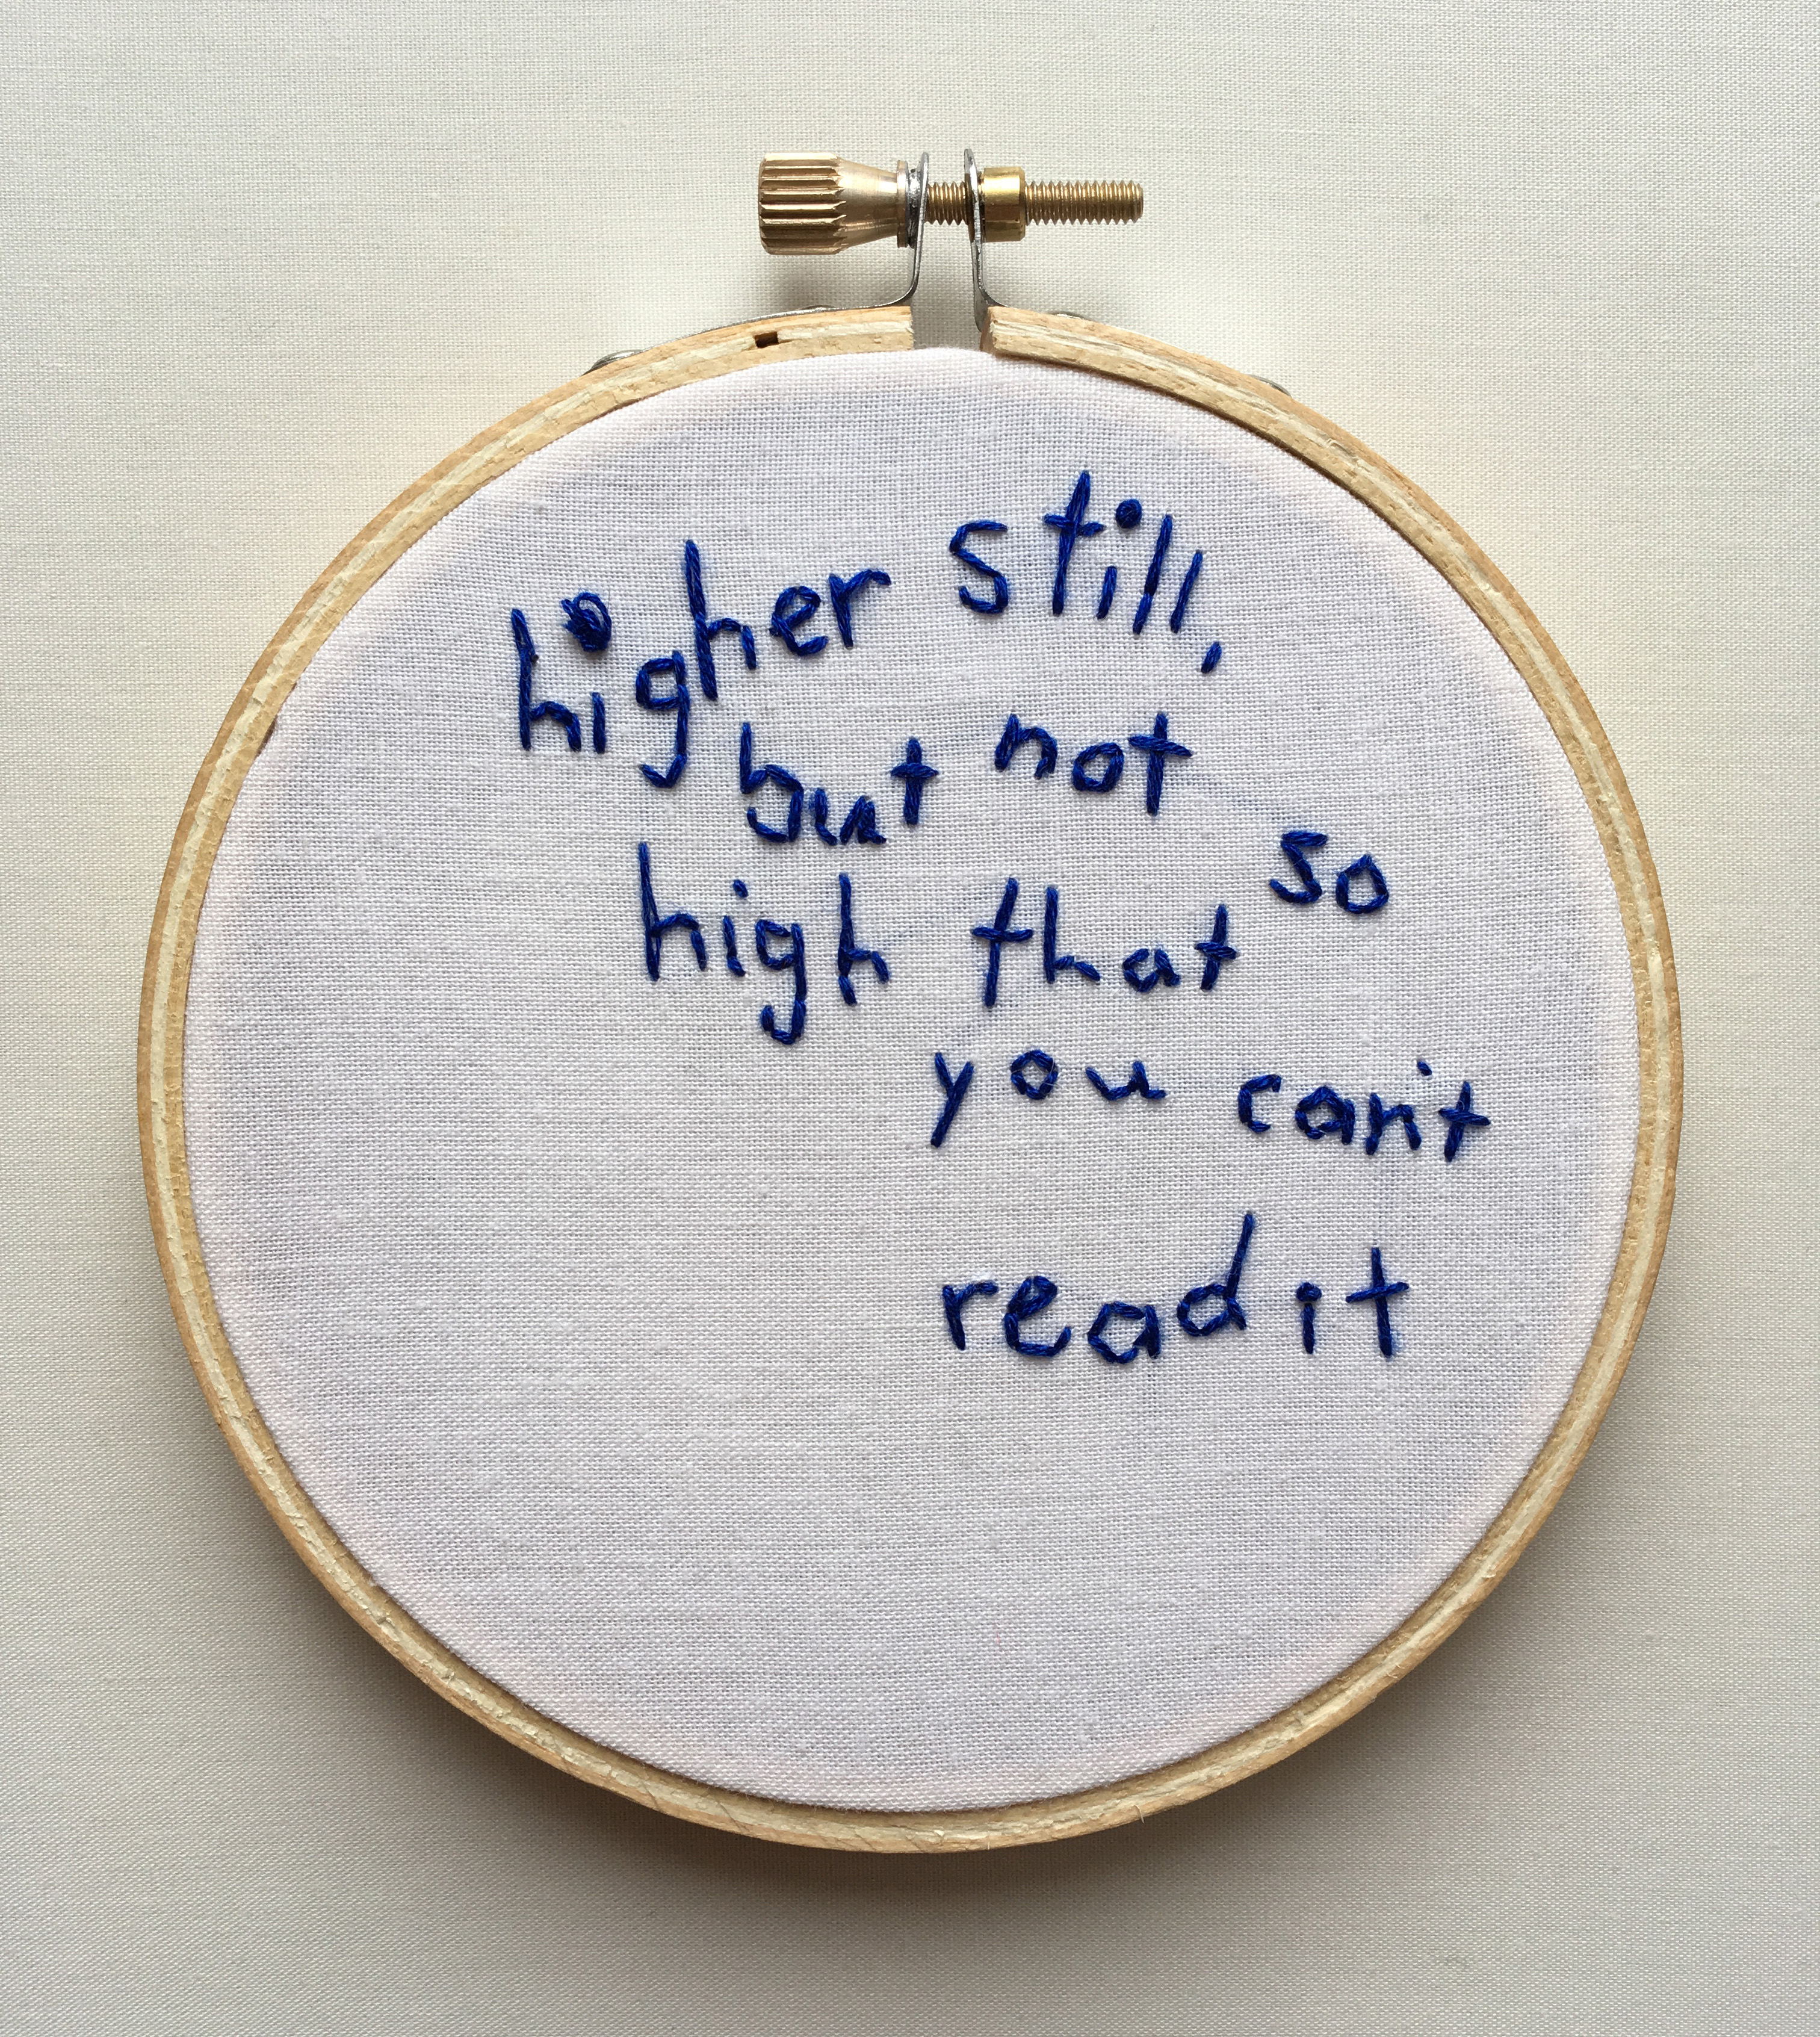 "An embroidery of the text ""higher still, but not so high that you cant read it"" on white fabric stretched over a hoop."